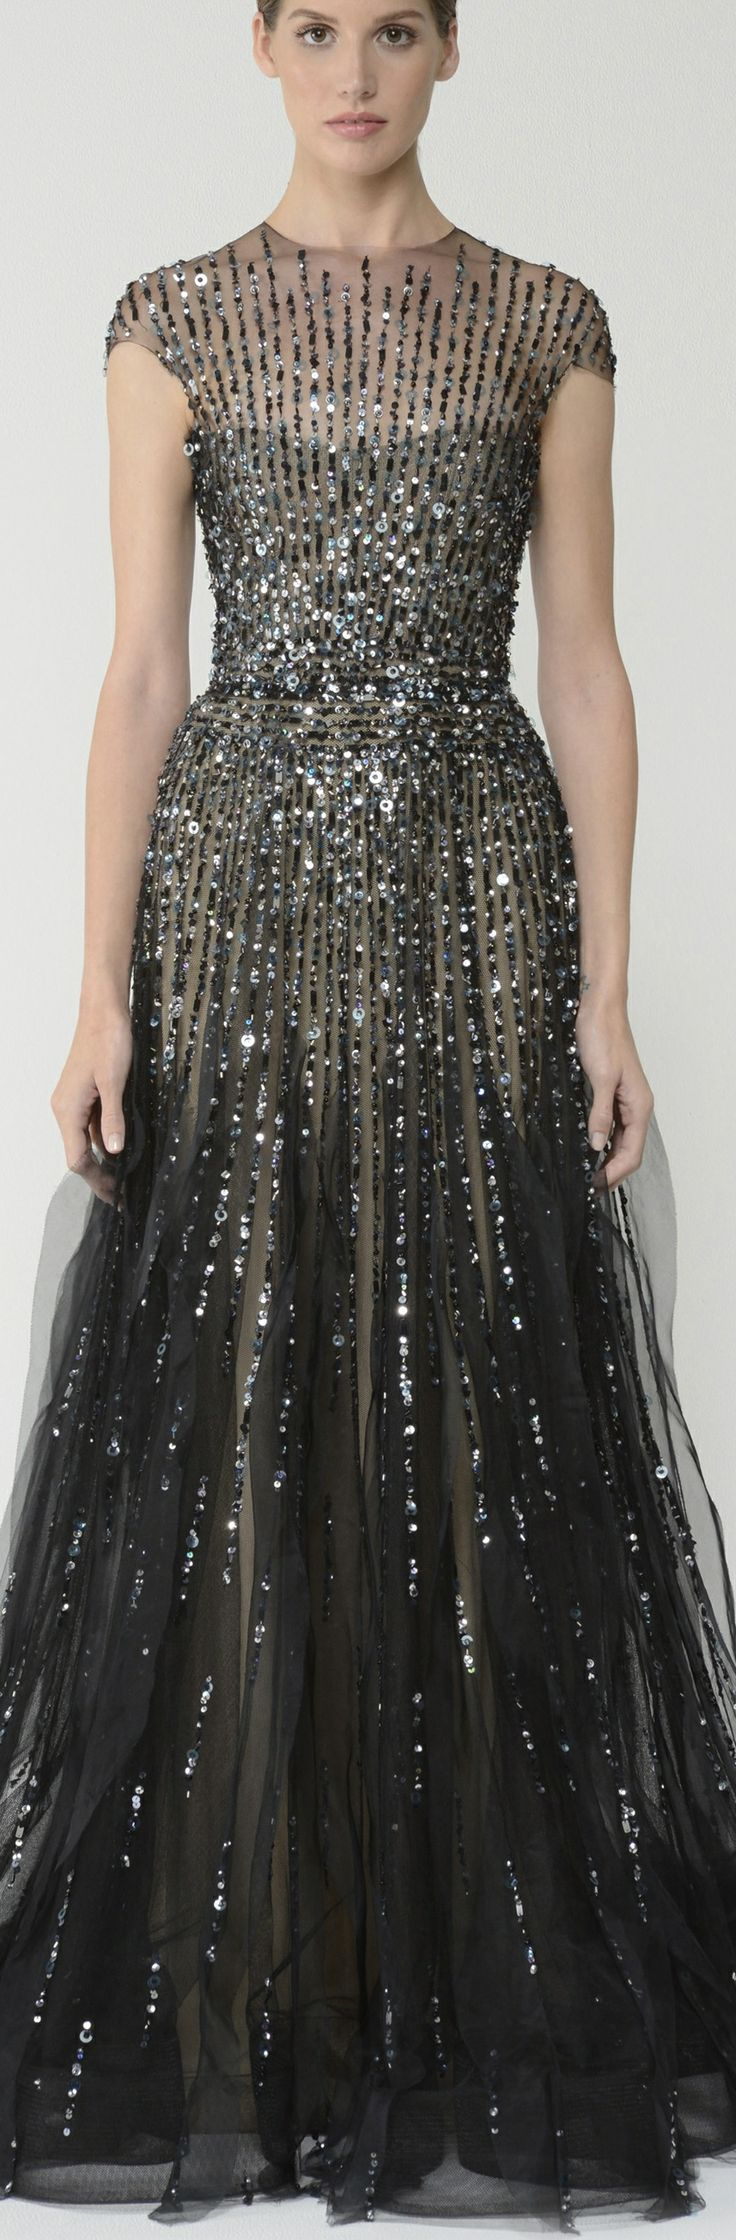 A little sparkle never hurt anyone! We just love this Monique Lhuillier gown.